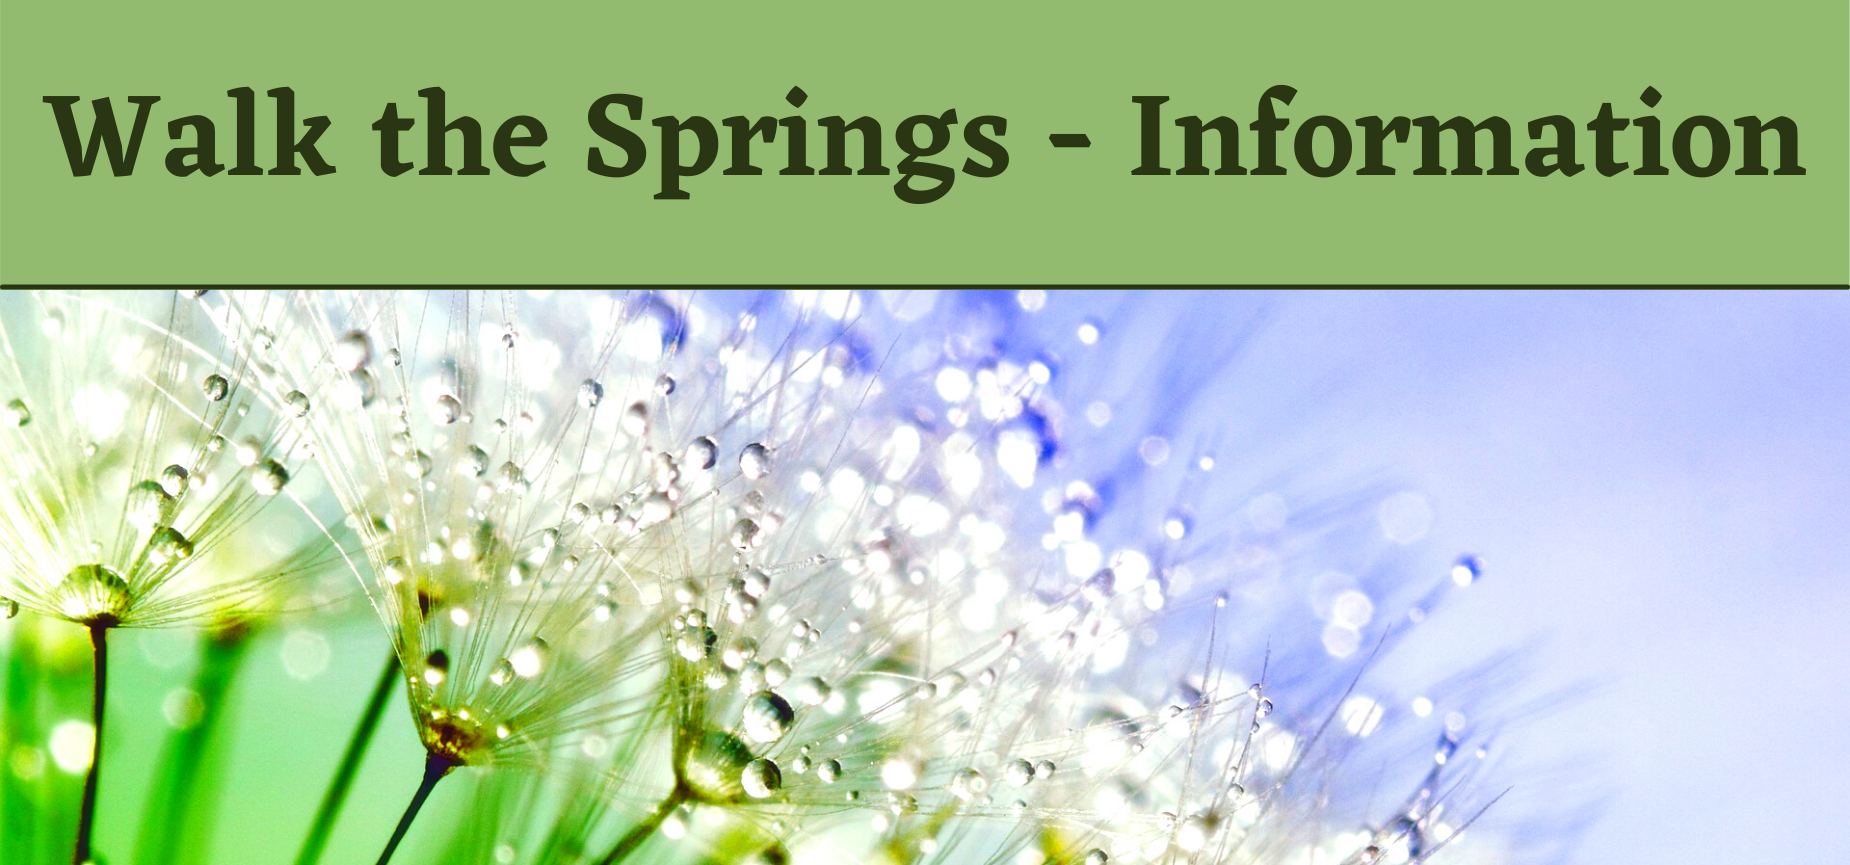 'Walk the Springs - Information' over a photo of dandelions covered in dew